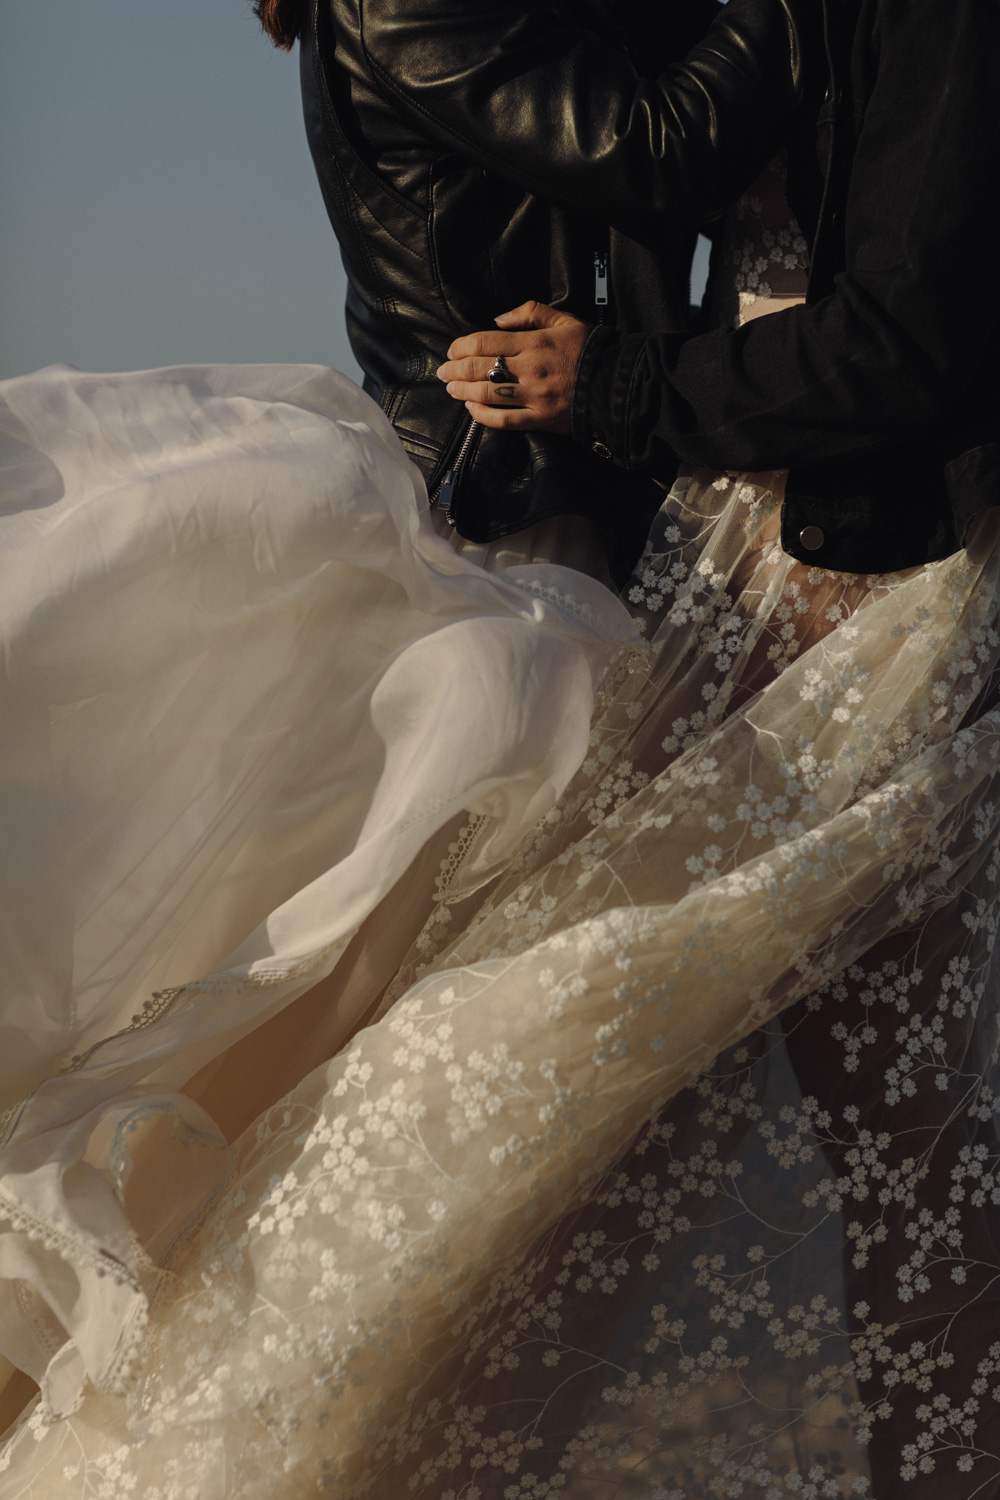 Brides wearing Lace dresses and leather jackets in Santorini